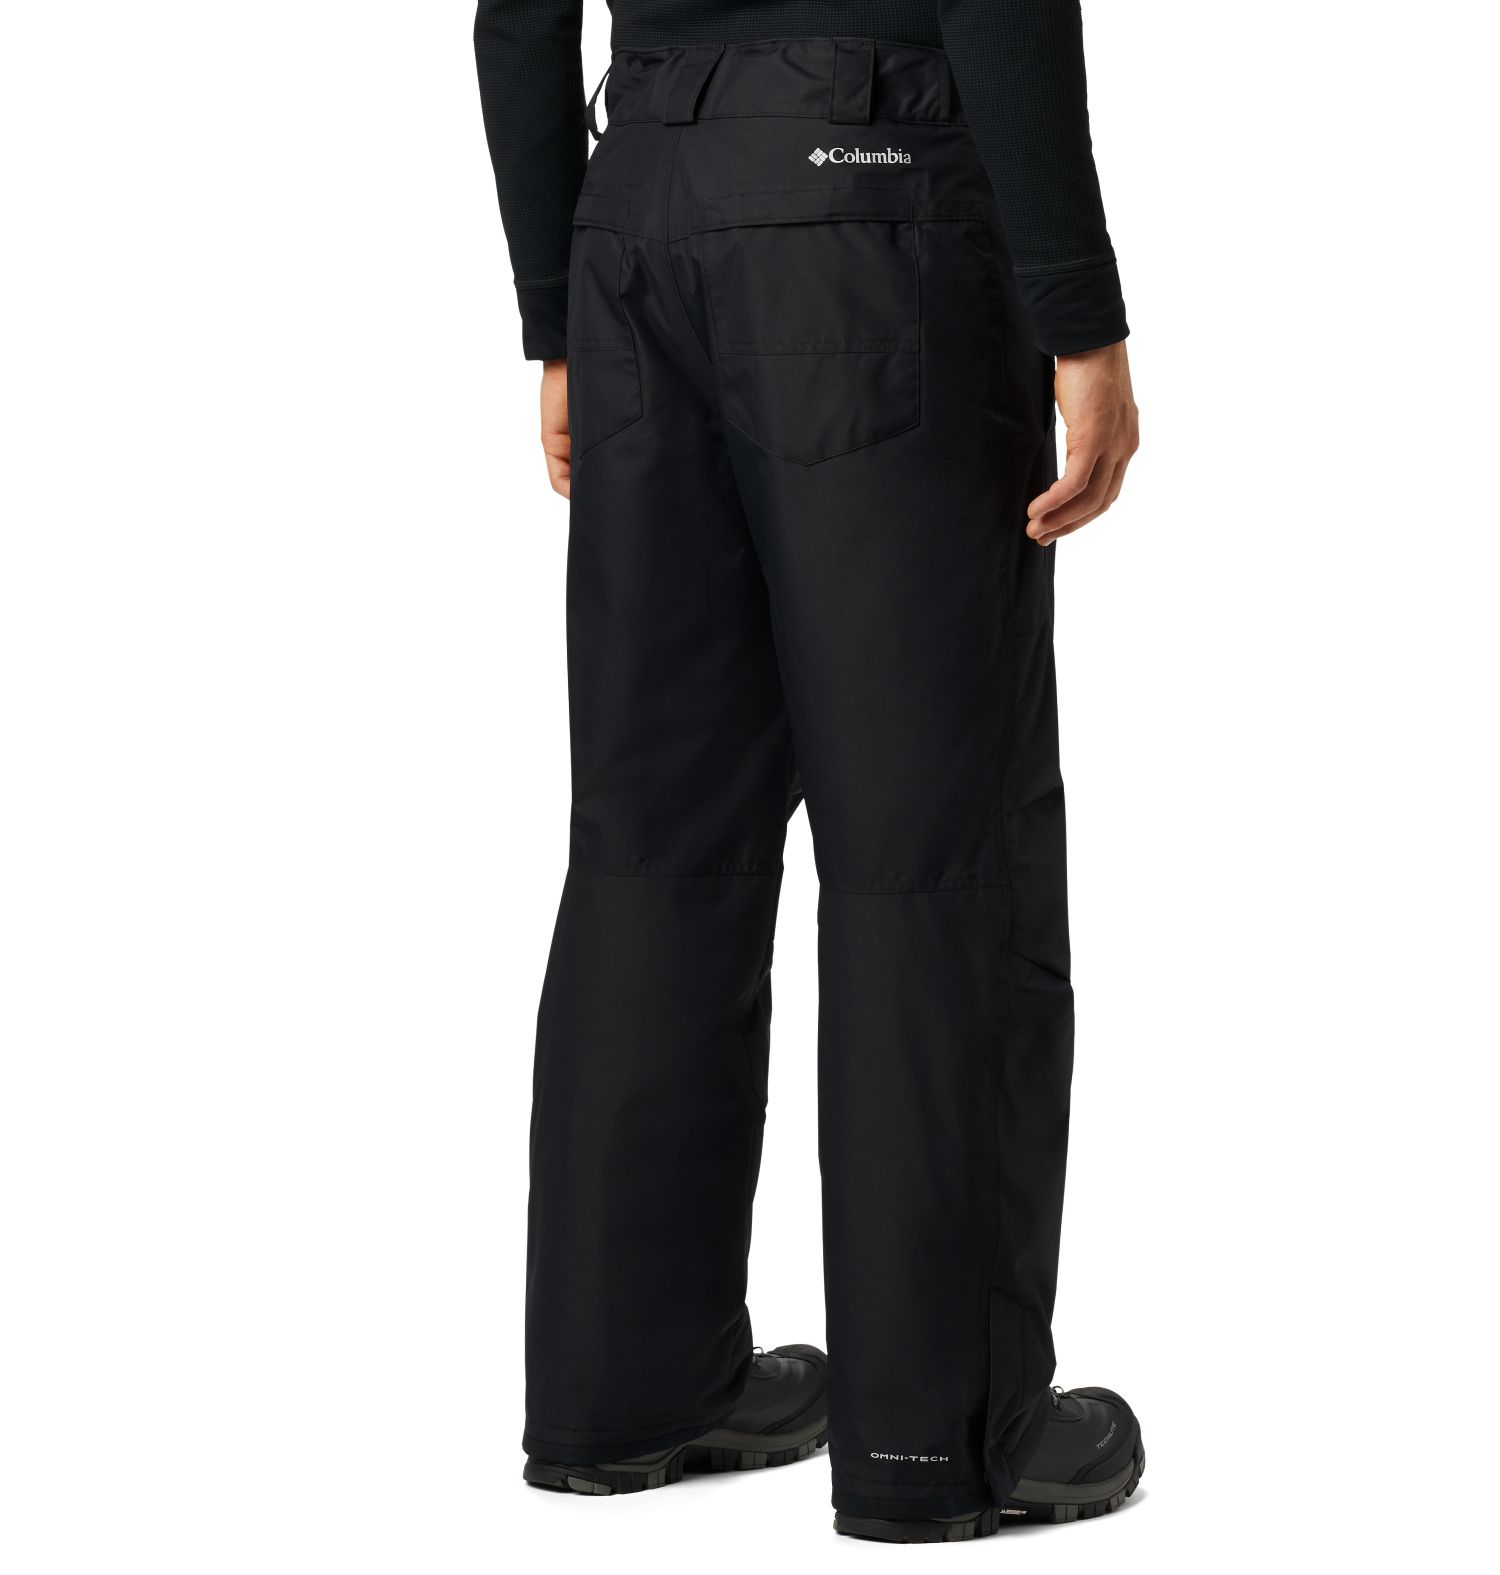 PANTALON LARGO 60G MICROTEMP XF II 100% POLYESTER Omni-TECH WATERPROOF BREATHABLE Omni-HEAT THERMAL REFLECTIVE BLACK